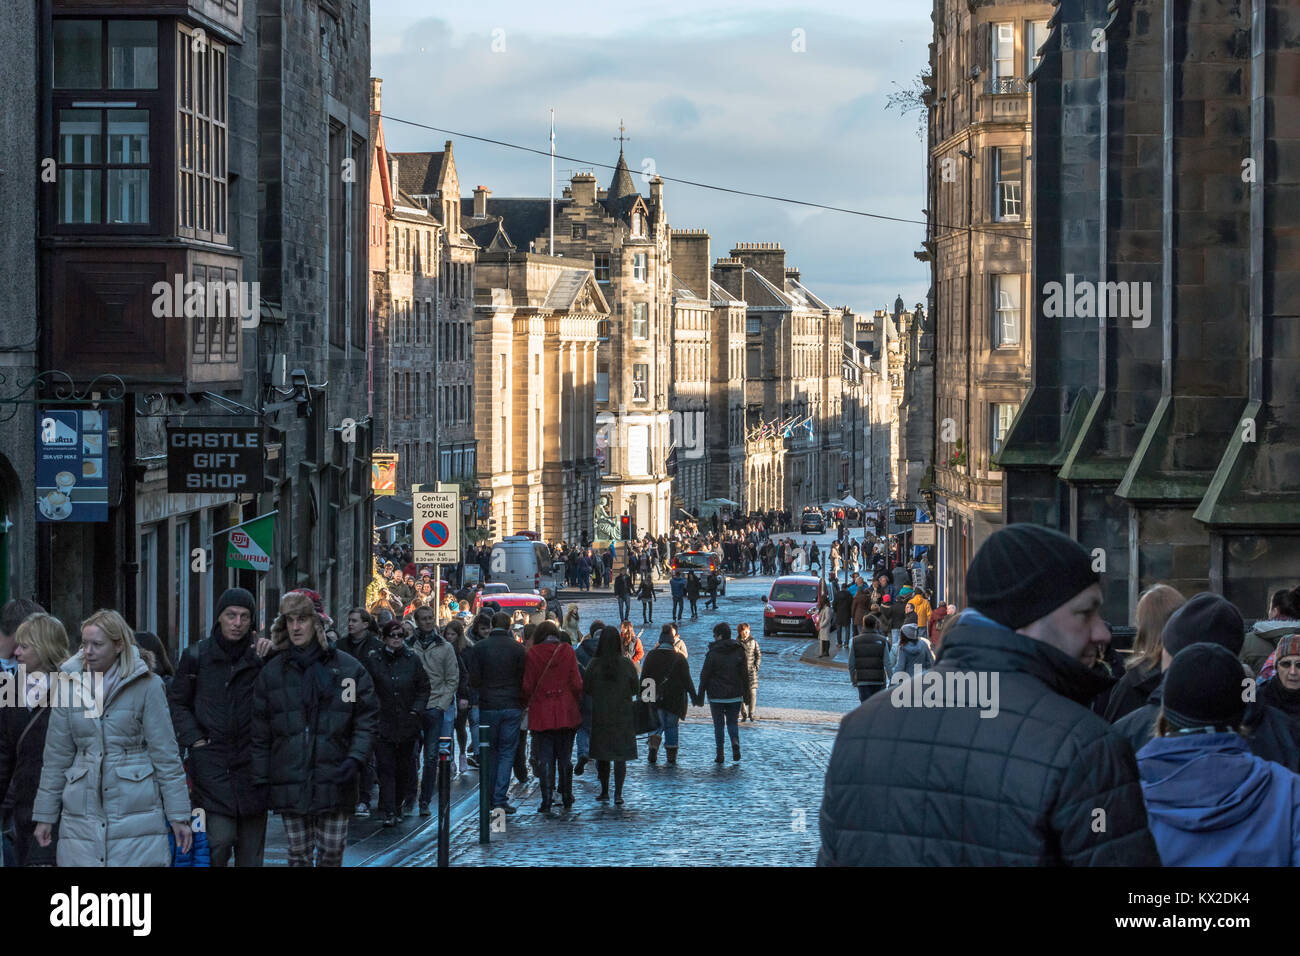 Looking down the Royal Mile, Edinburgh on a cold winters day Stock Photo